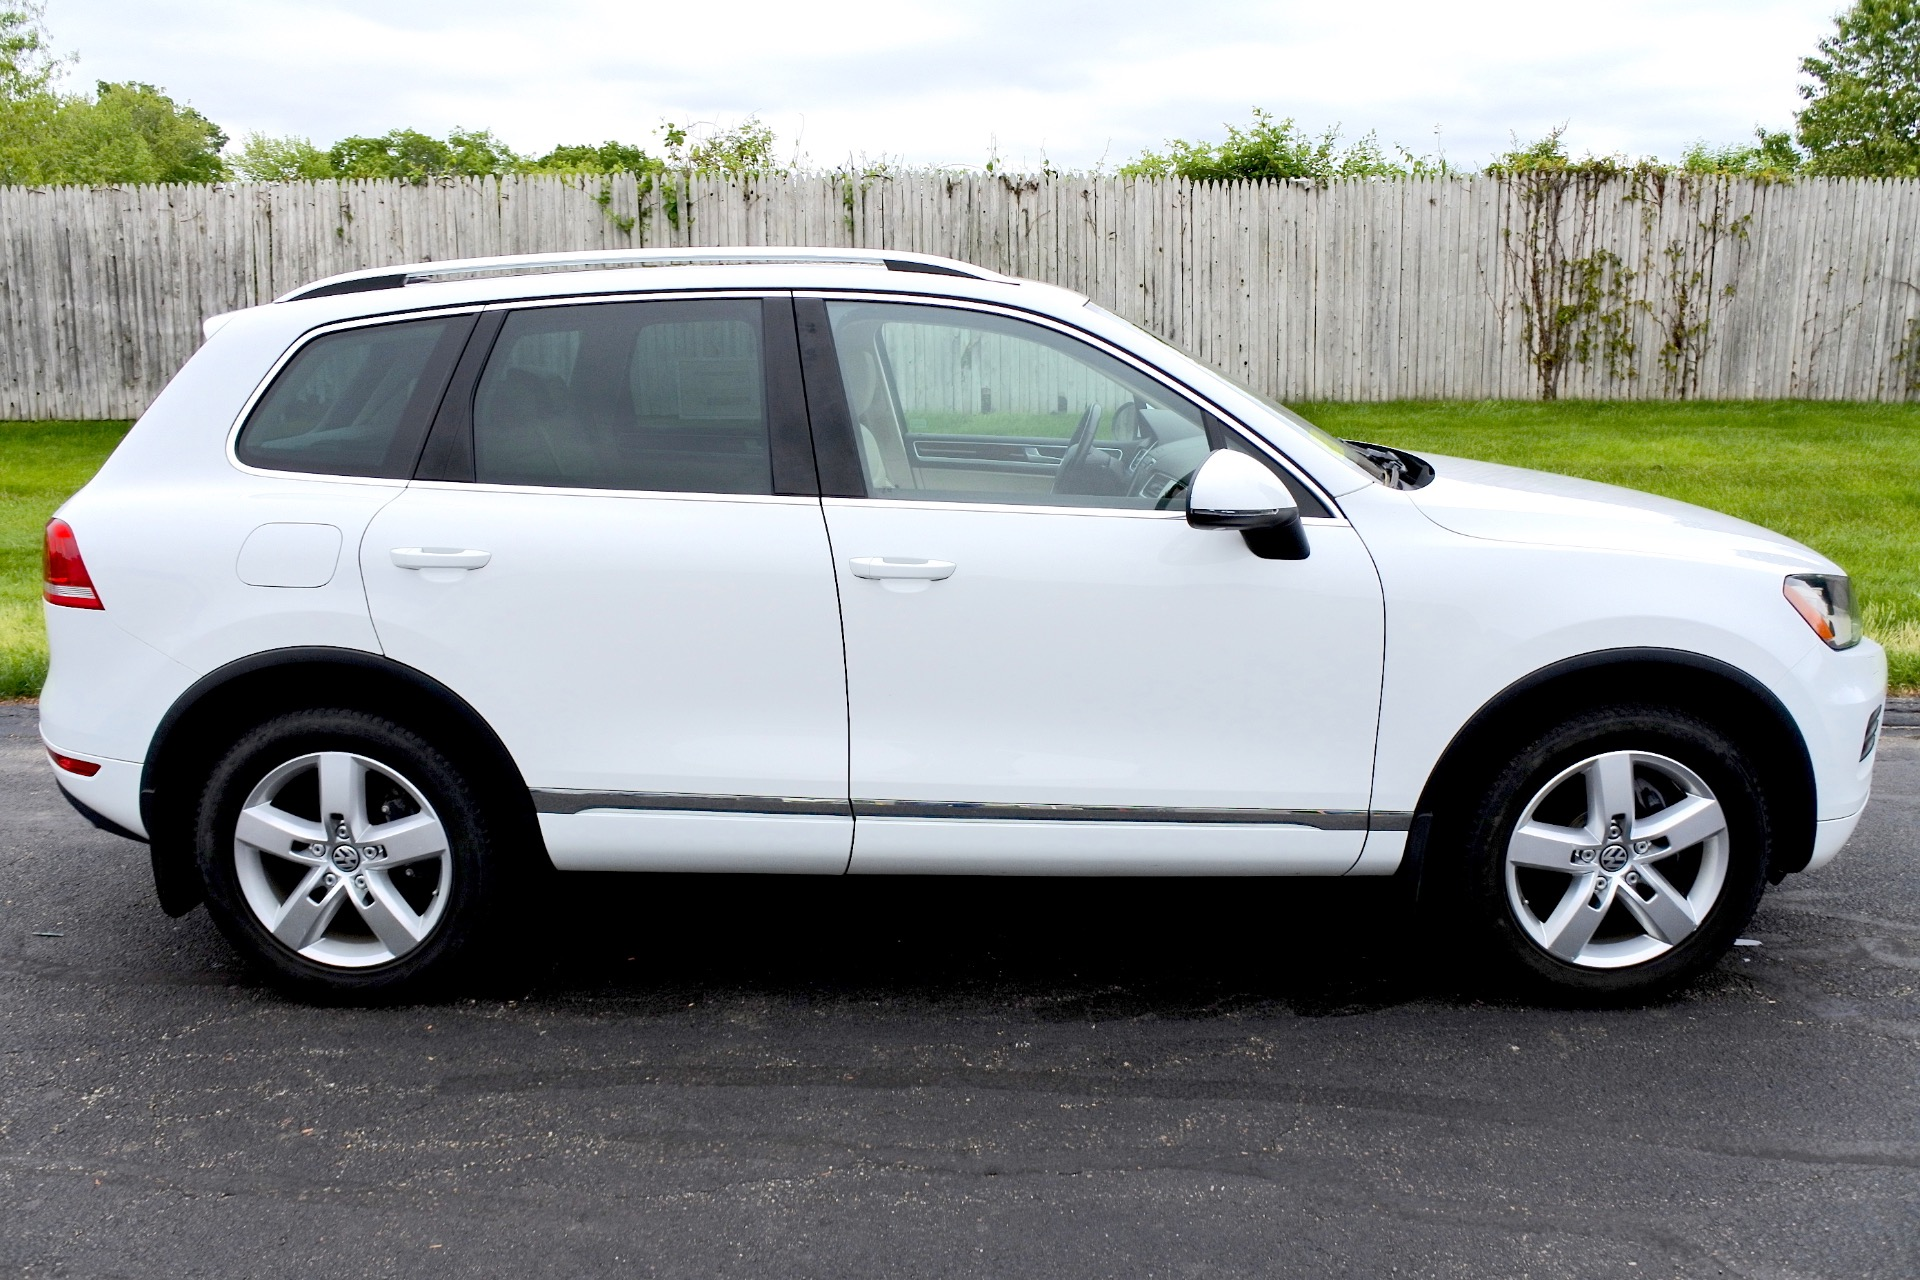 Used 2012 Volkswagen Touareg TDI Lux Used 2012 Volkswagen Touareg TDI Lux for sale  at Metro West Motorcars LLC in Shrewsbury MA 6